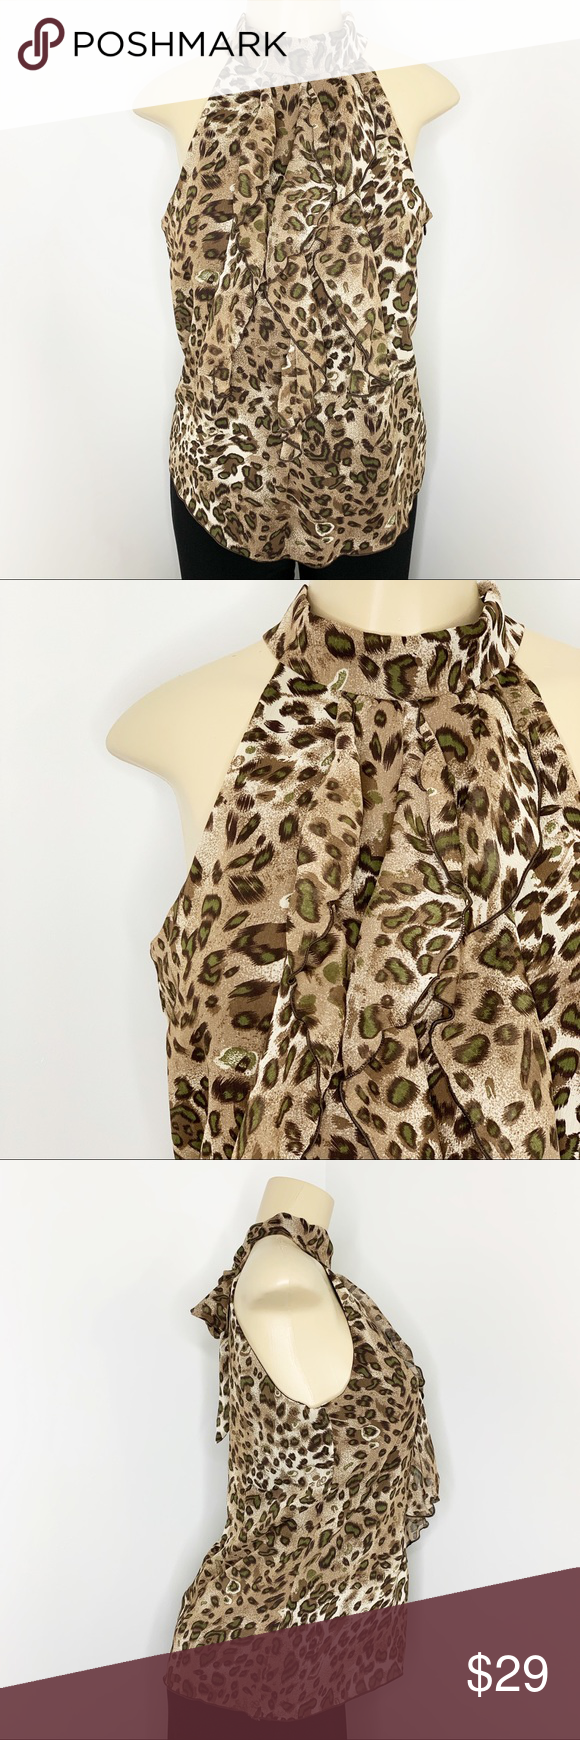 e8da3ddfaf8f Host Pick 🎀 B WEAR Byer CA Leopard Blouse Sz L This beautiful leopard print